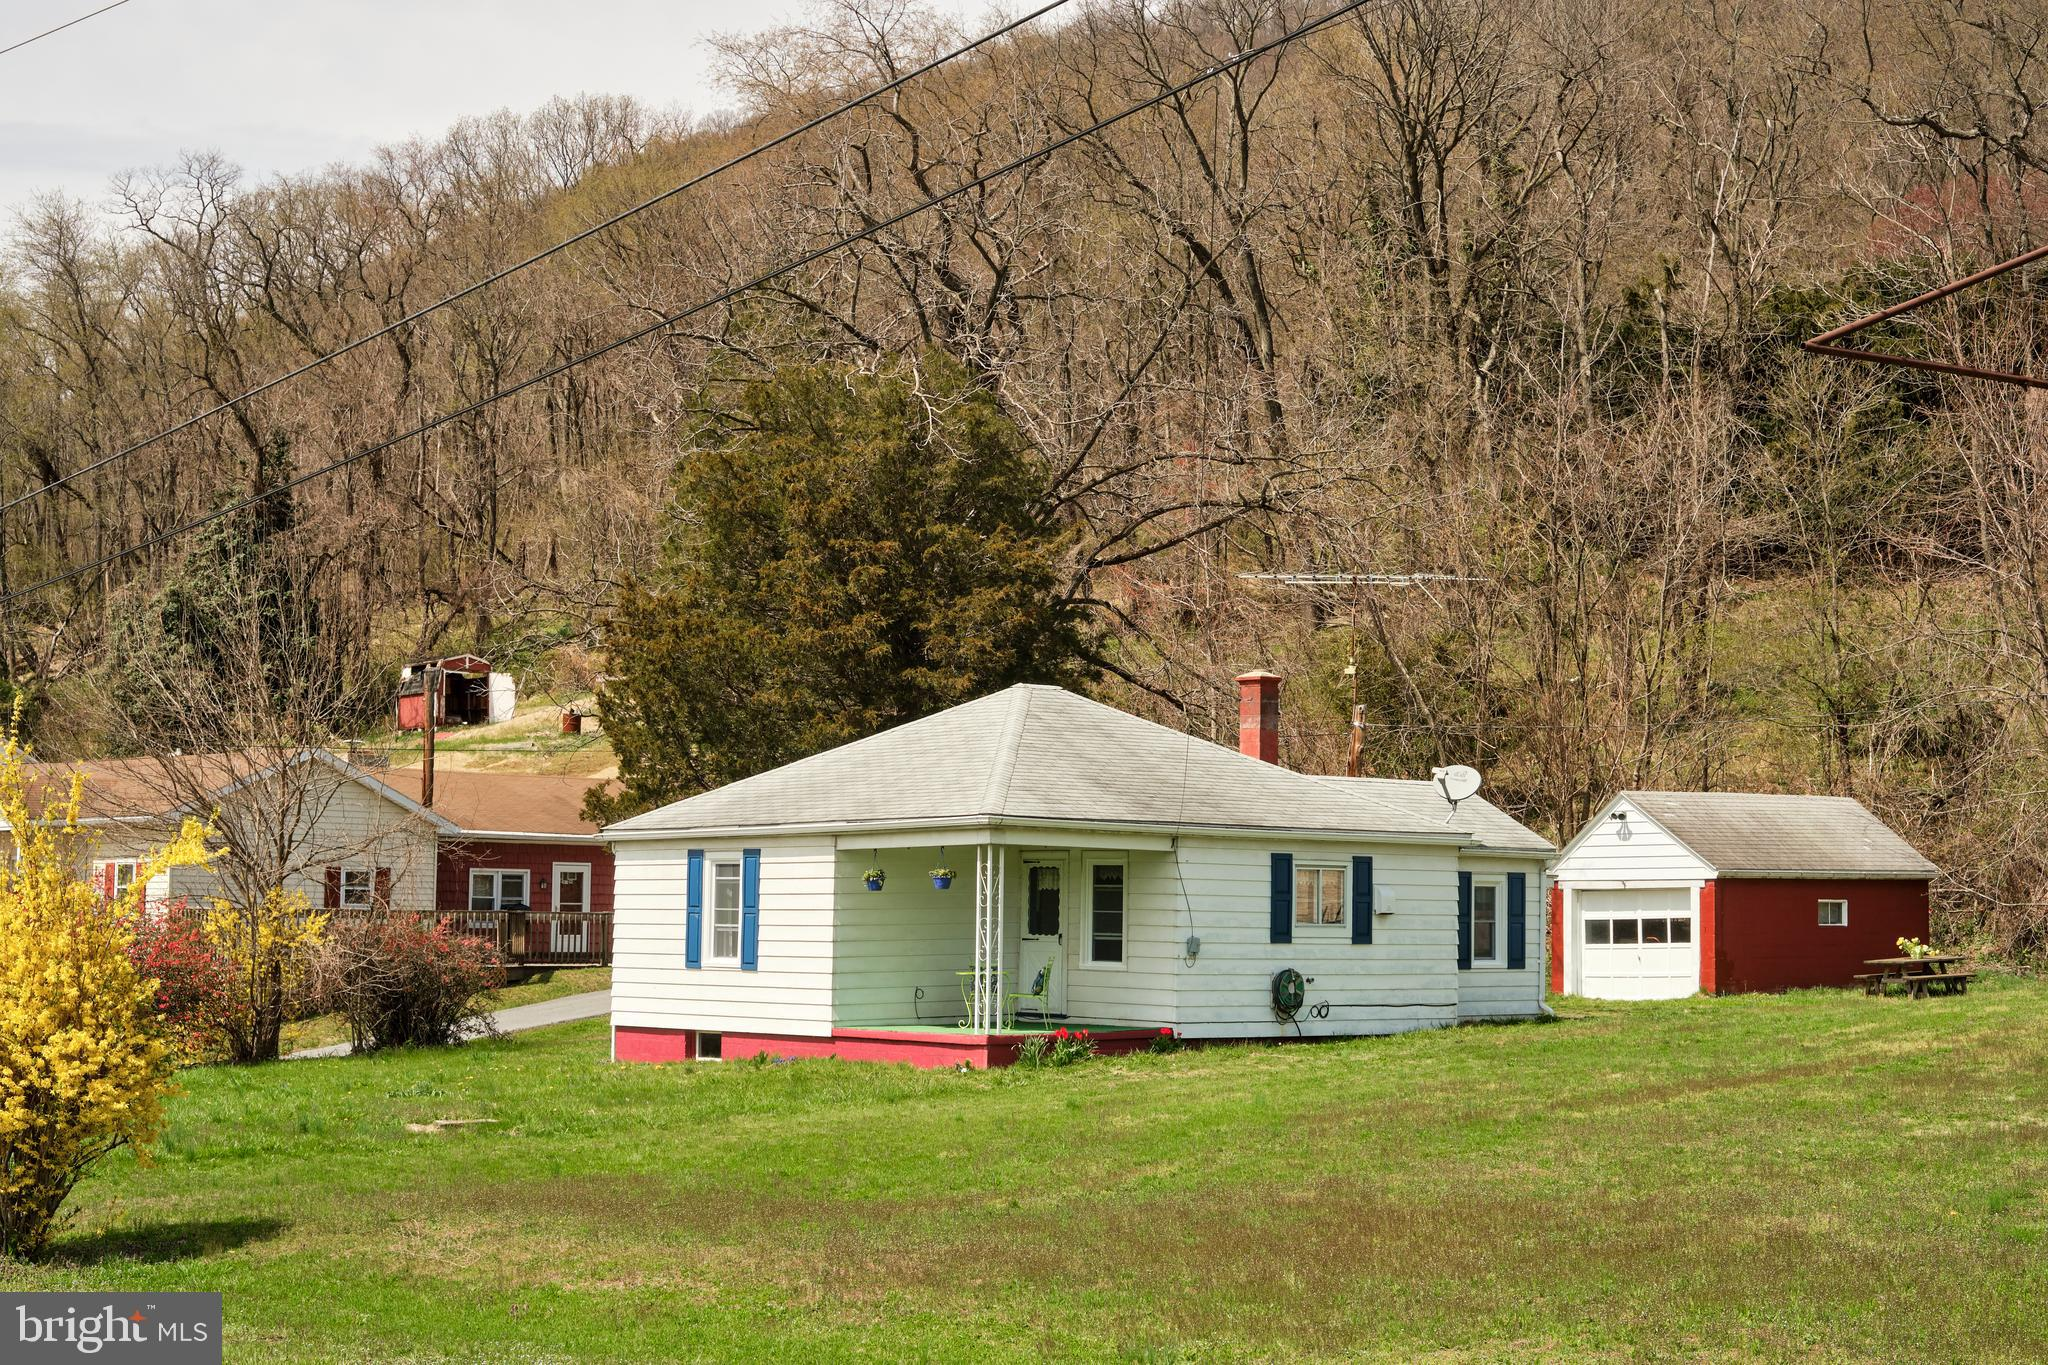 1901 OLD STATE ROAD, DAUPHIN, PA 17018